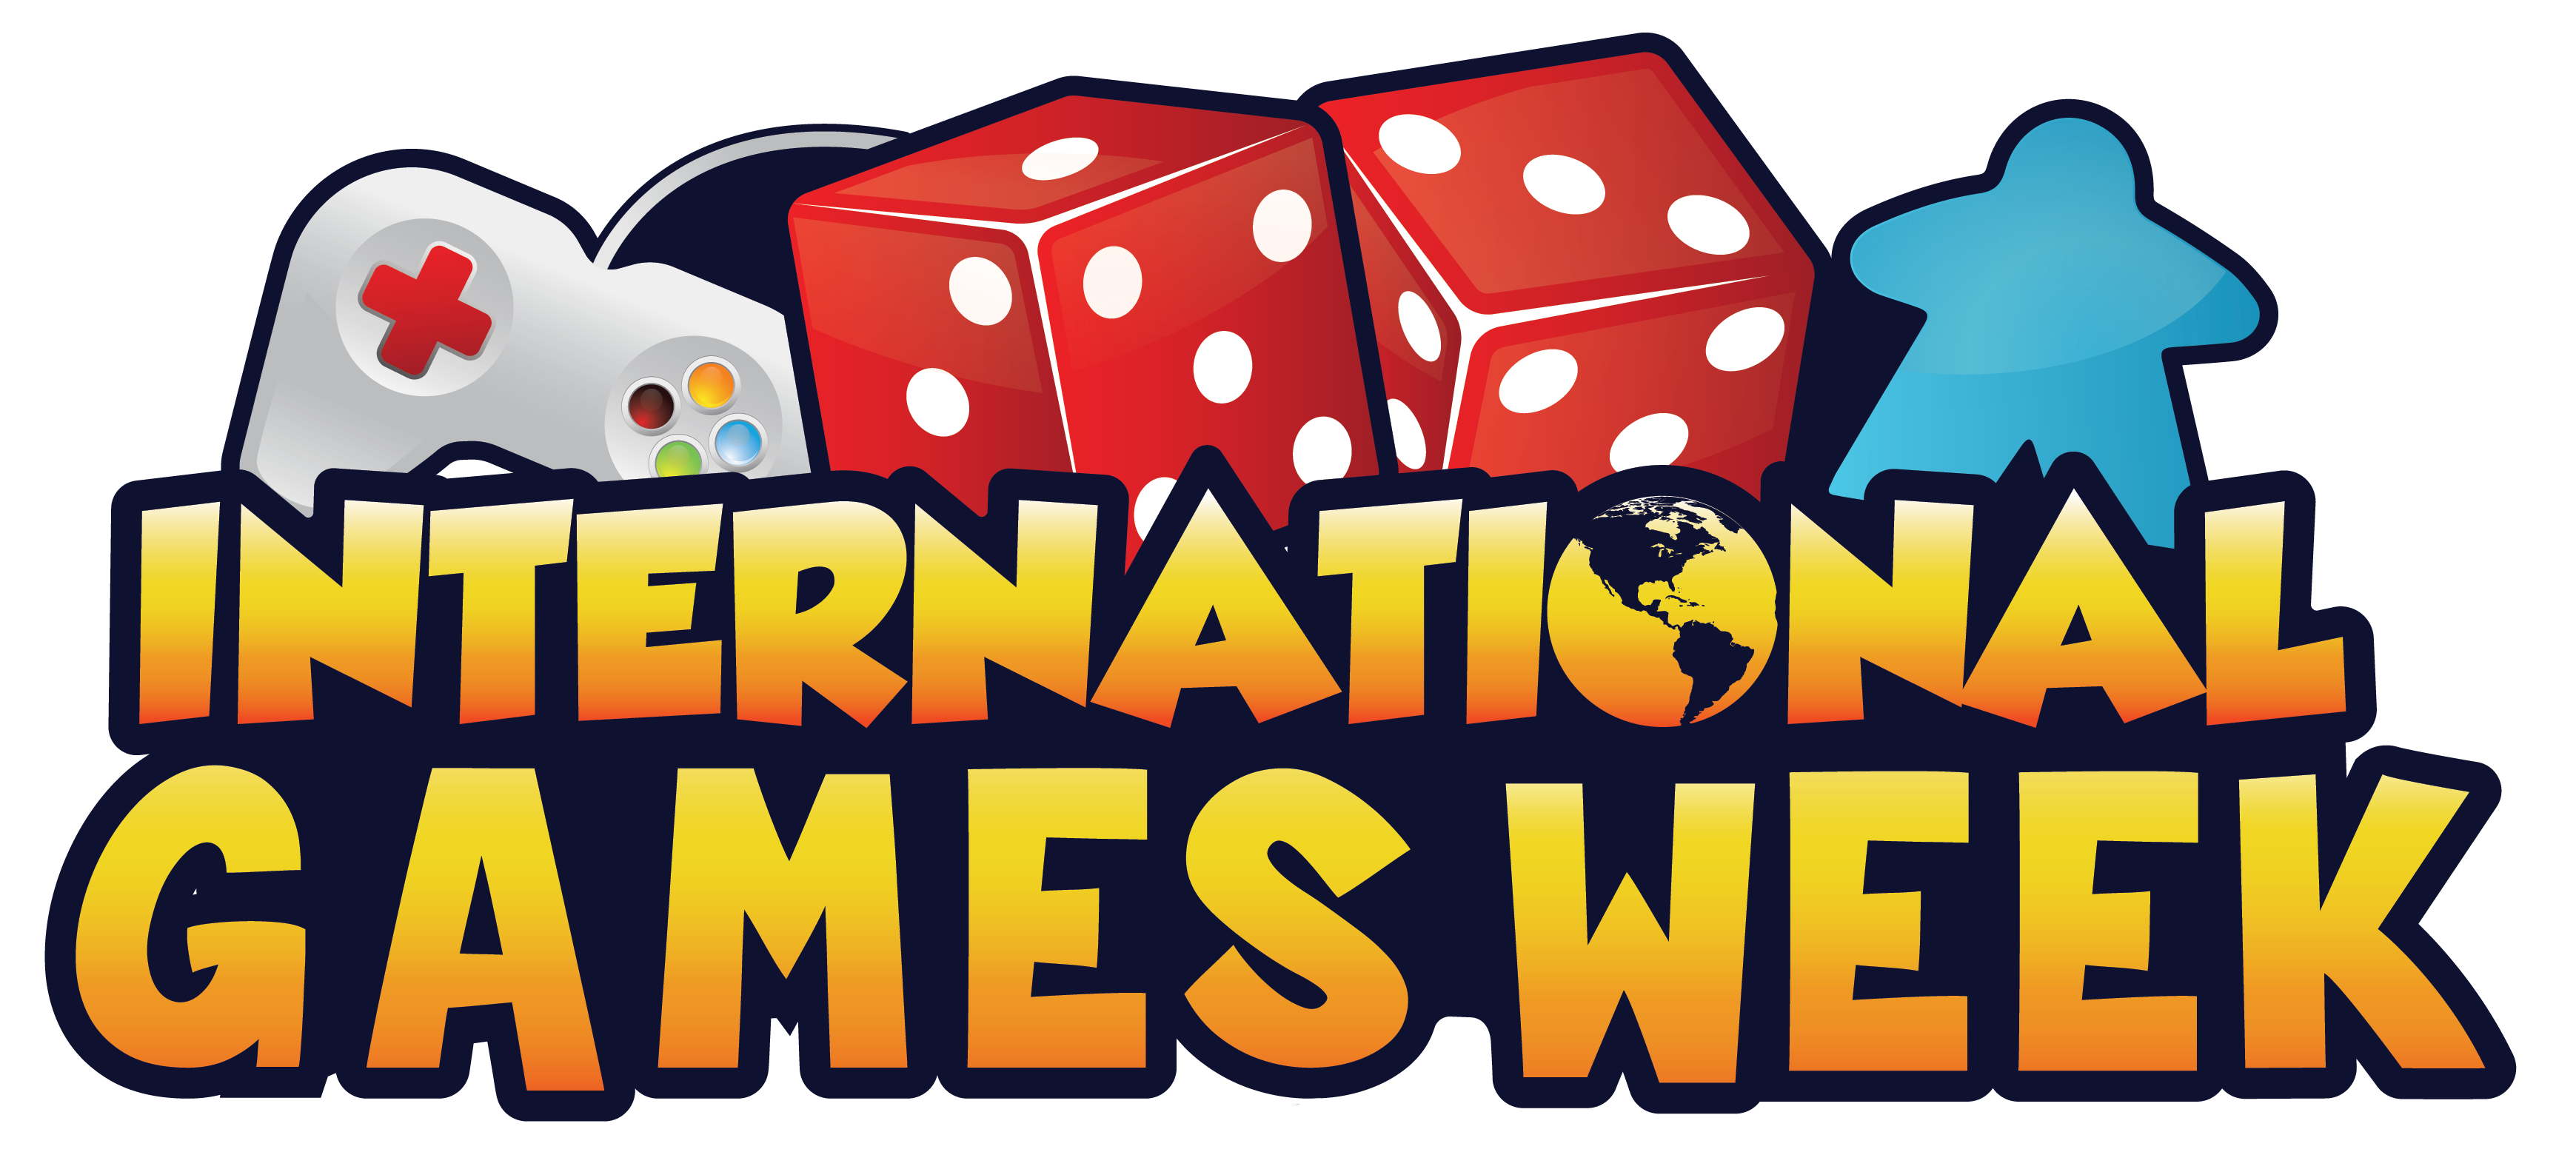 Logo international games week: words with dice, controller, and avatar